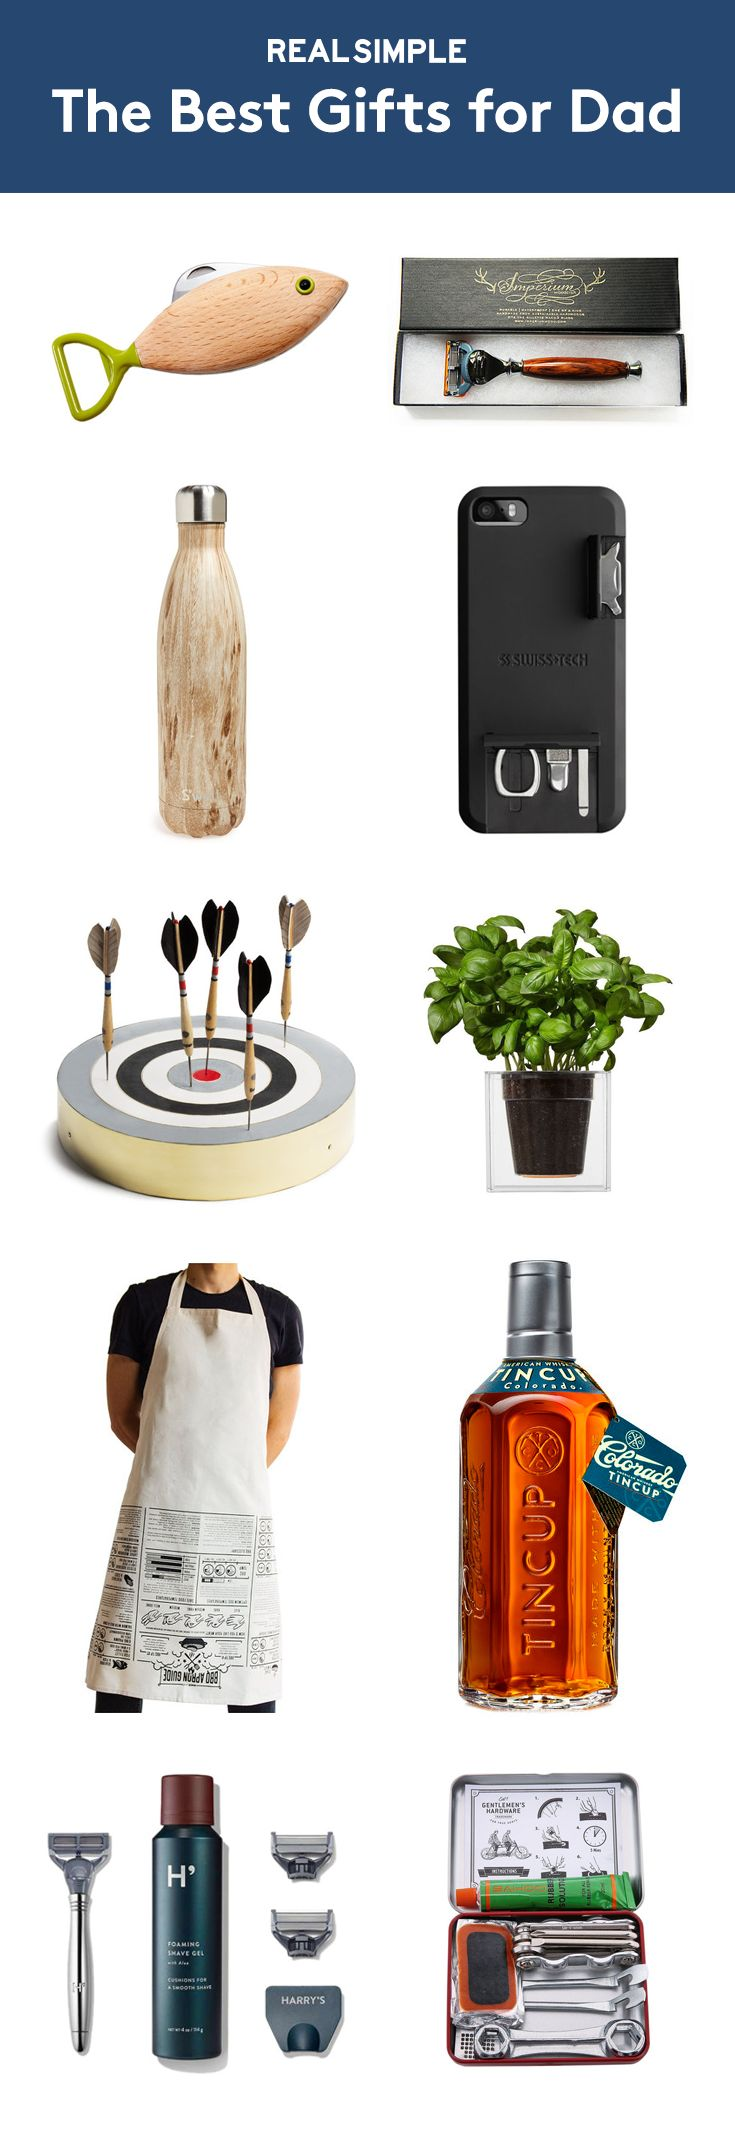 The Best Gifts for Dad | From quirky and creative to sentimental, these picks work for even the hardest-to-shop-for dad.